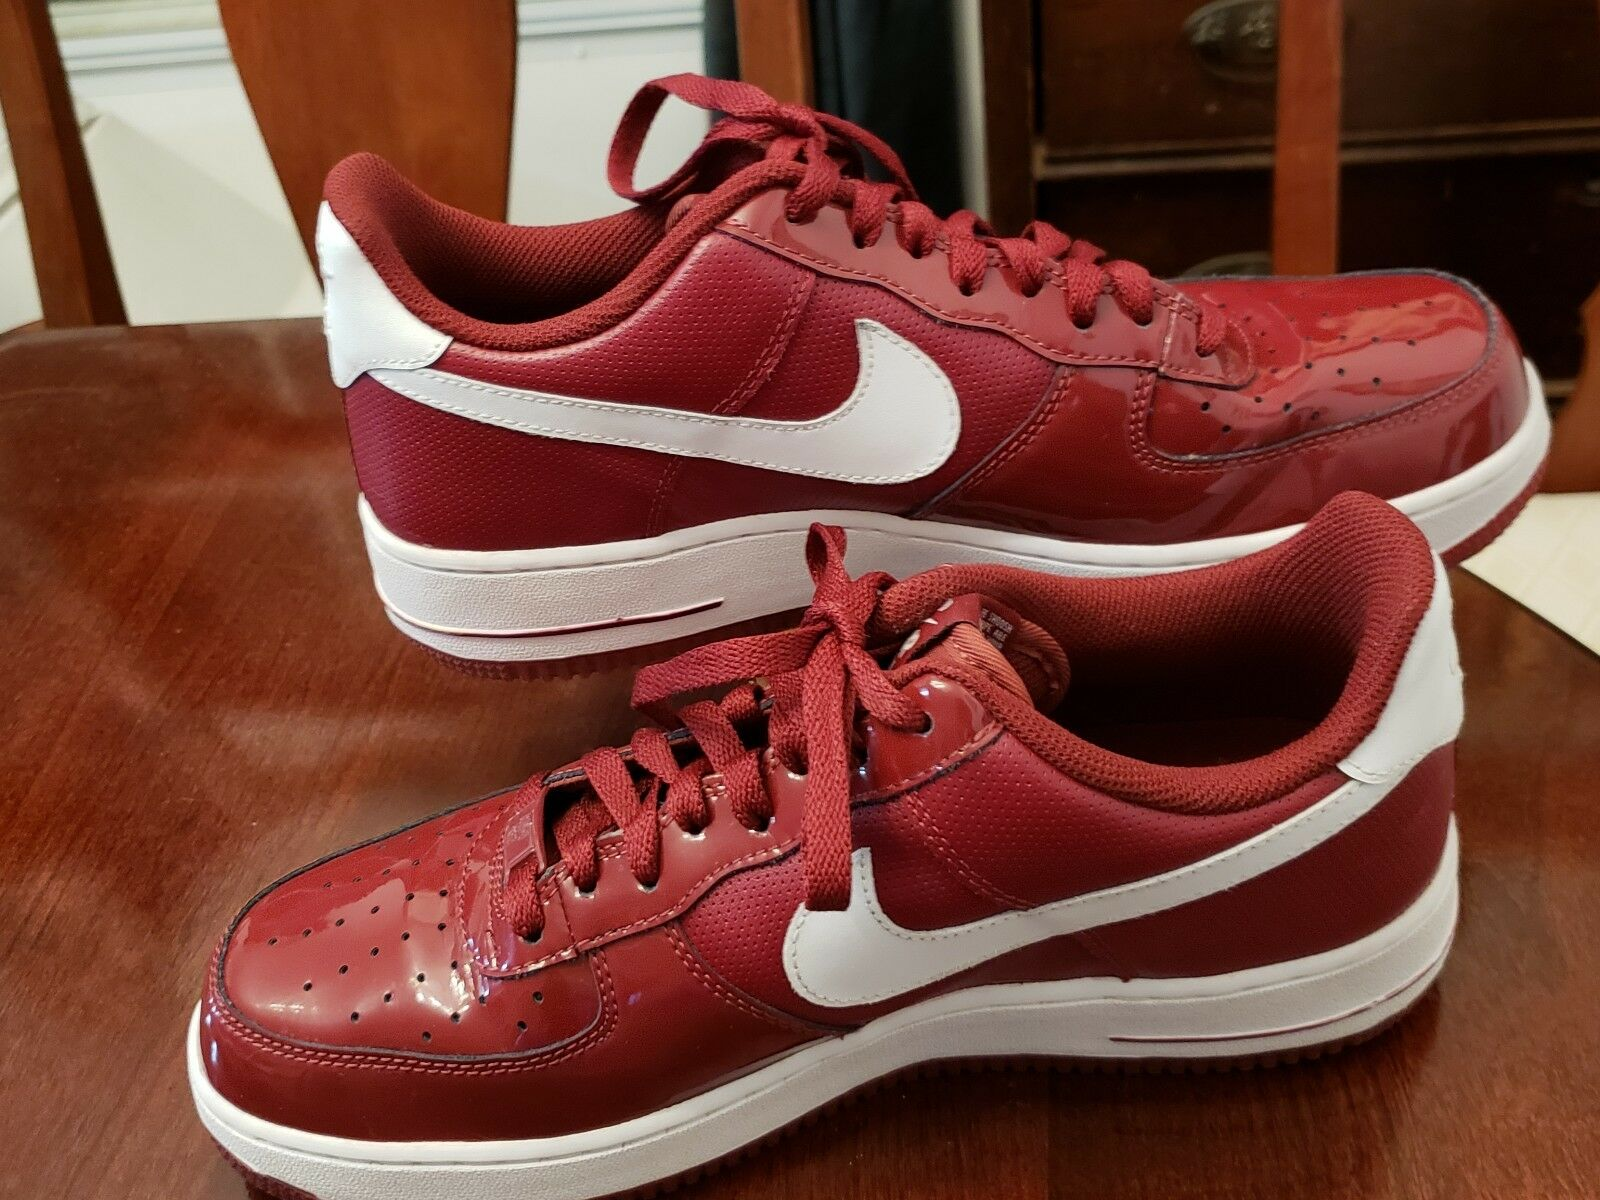 Mens Nike Air Force 1 Red White low leather shoes Size 9 excellent used